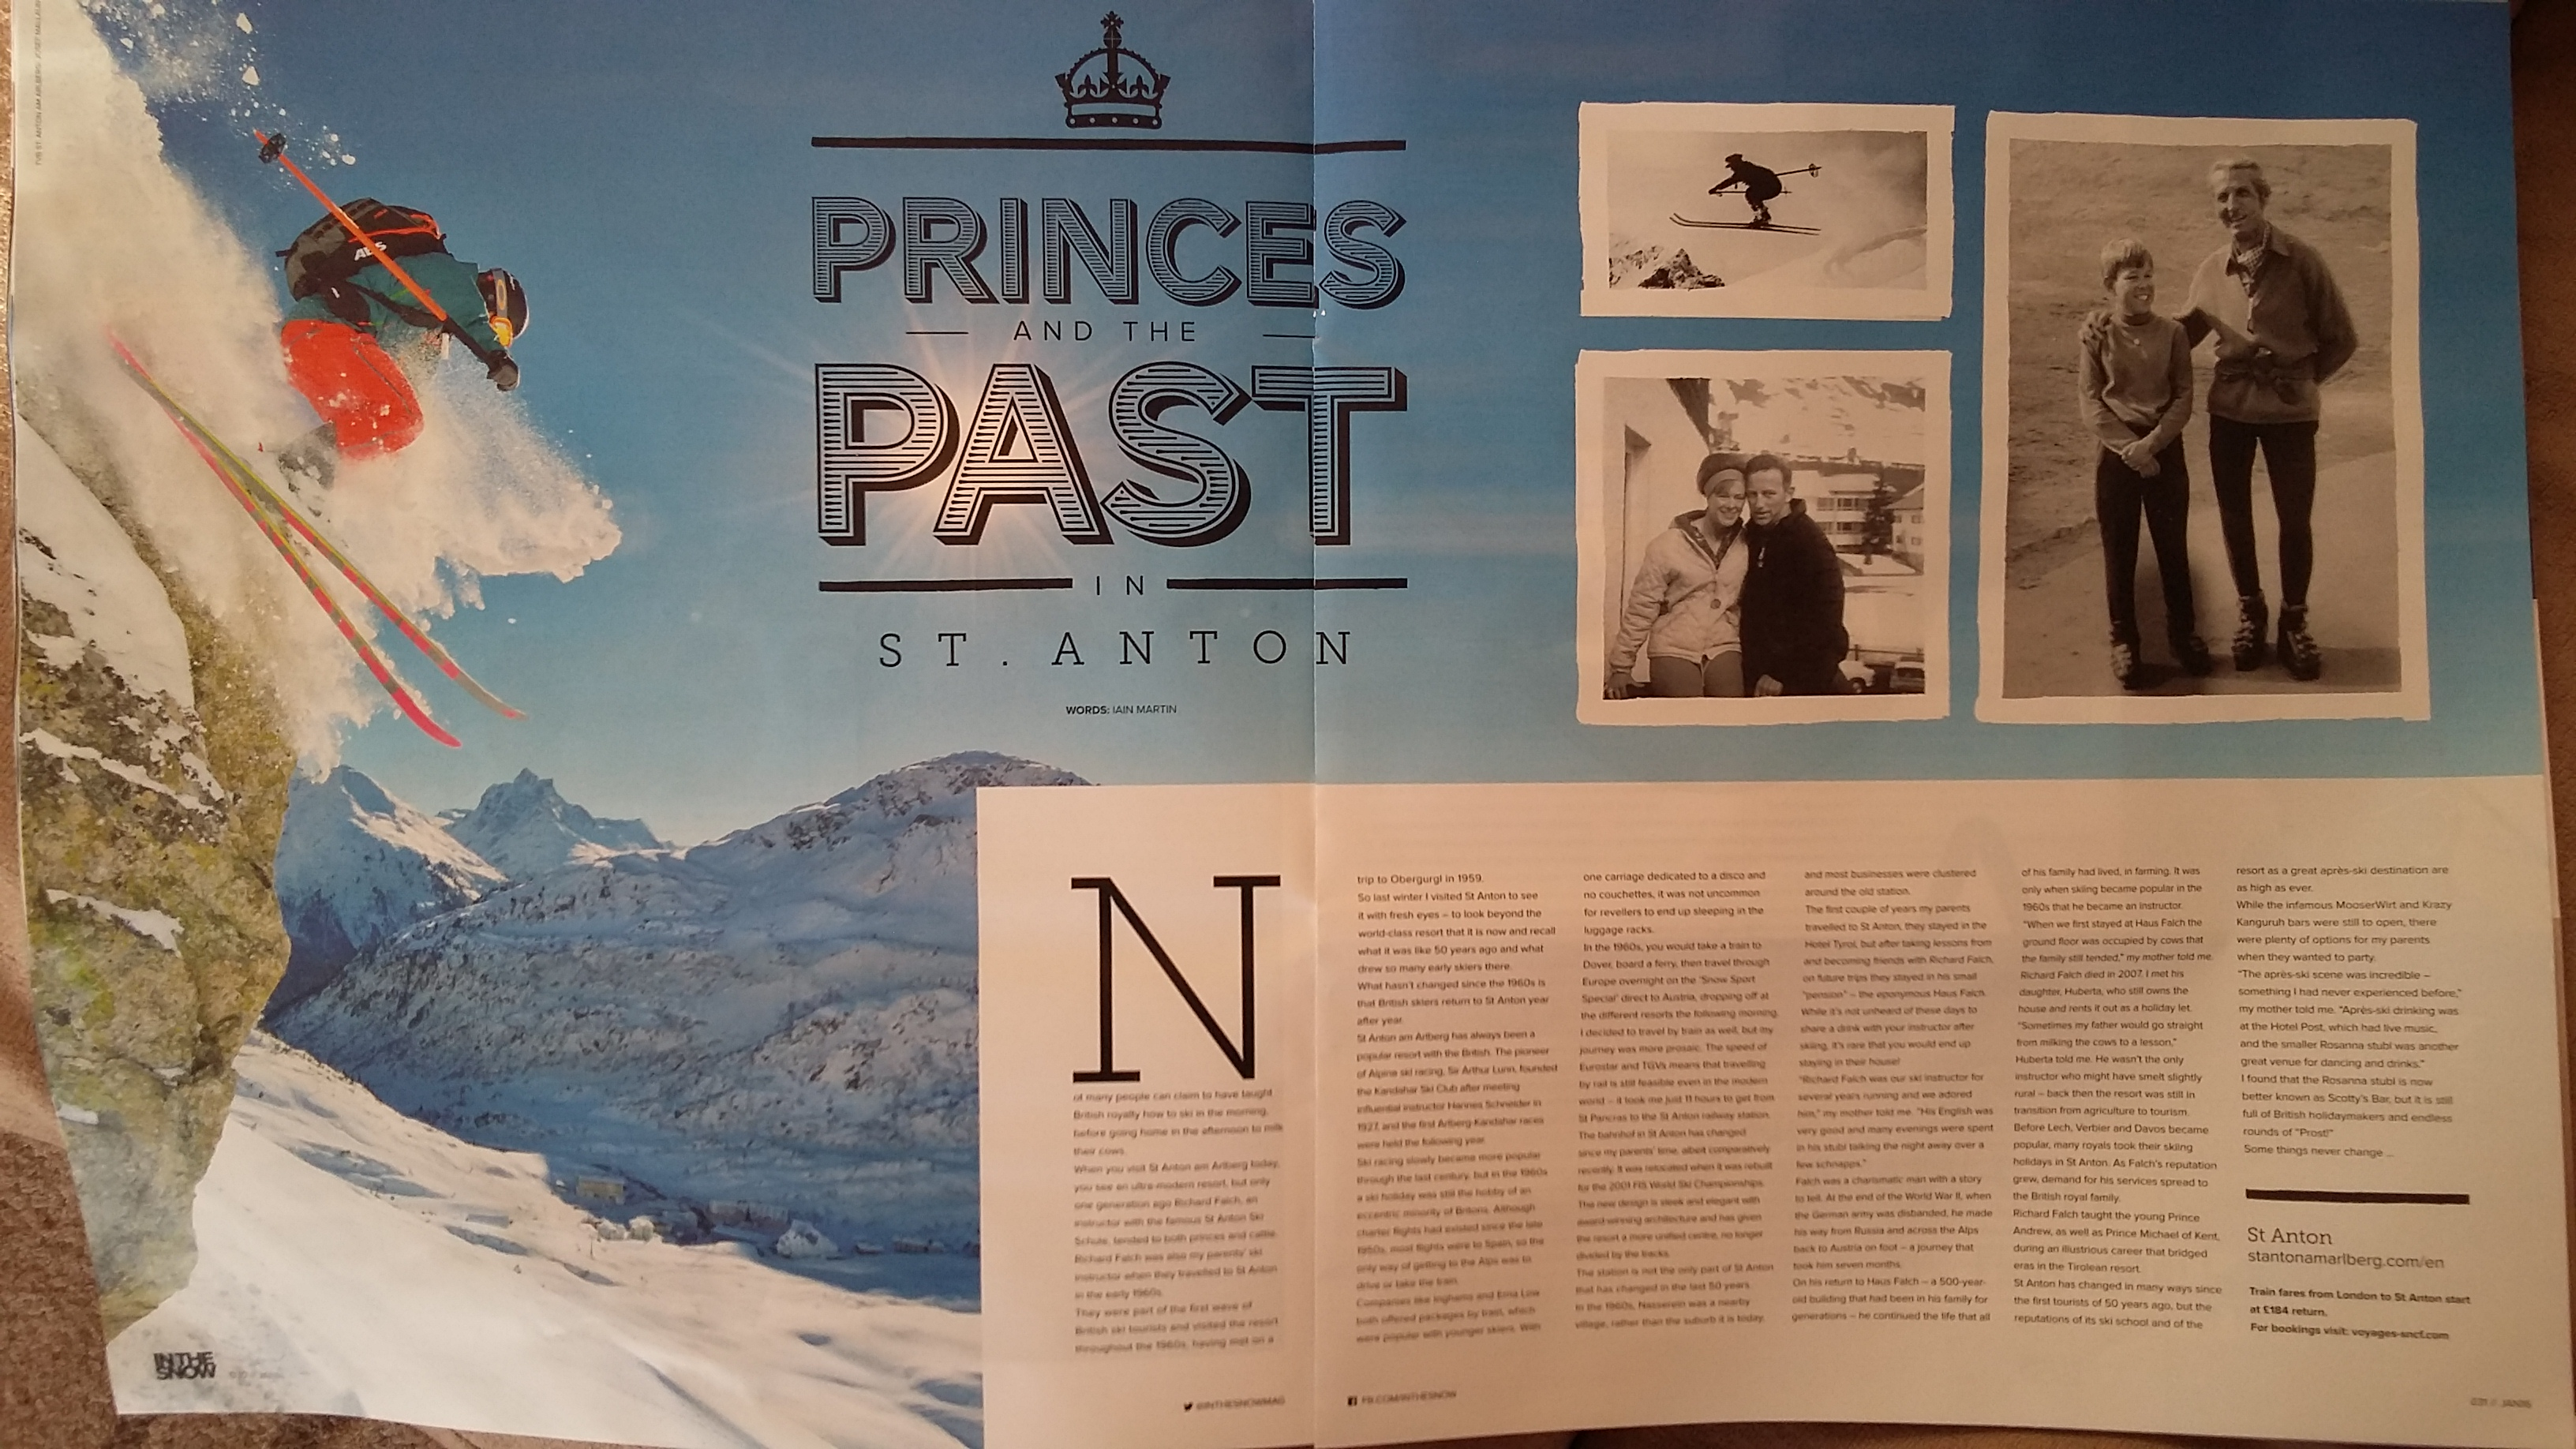 ITS st anton article